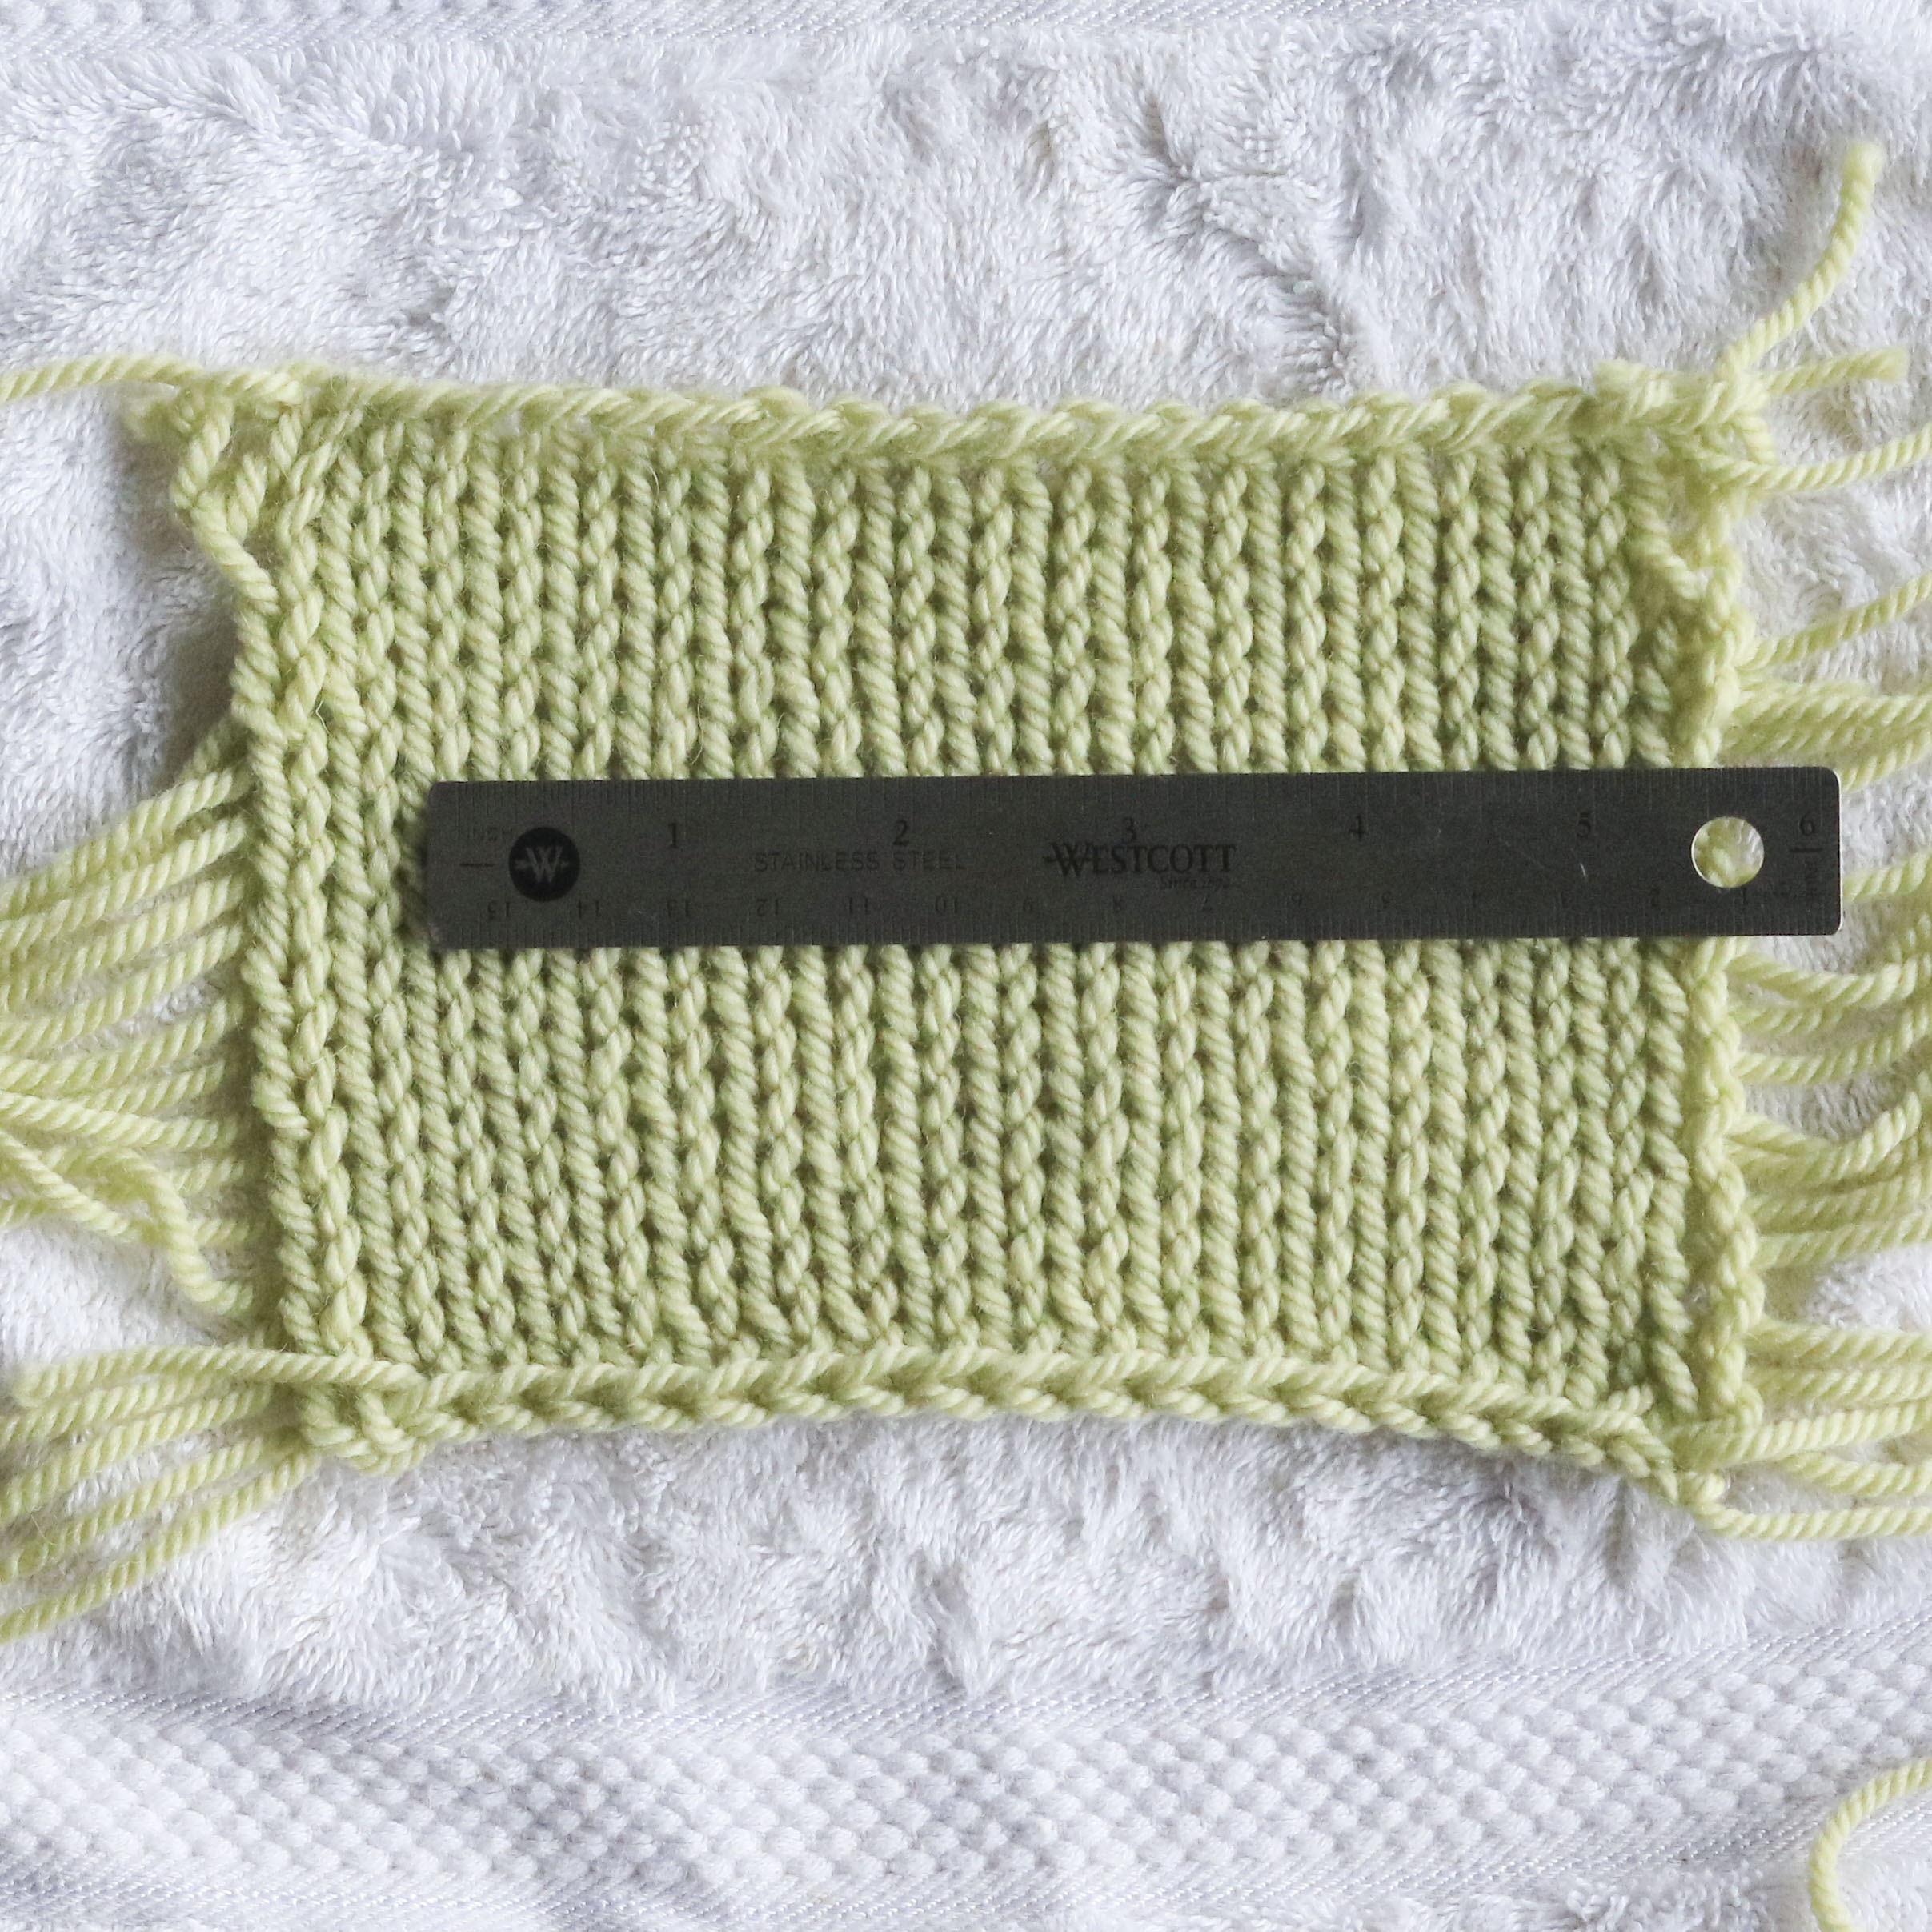 How to measure knitting gauge in the round